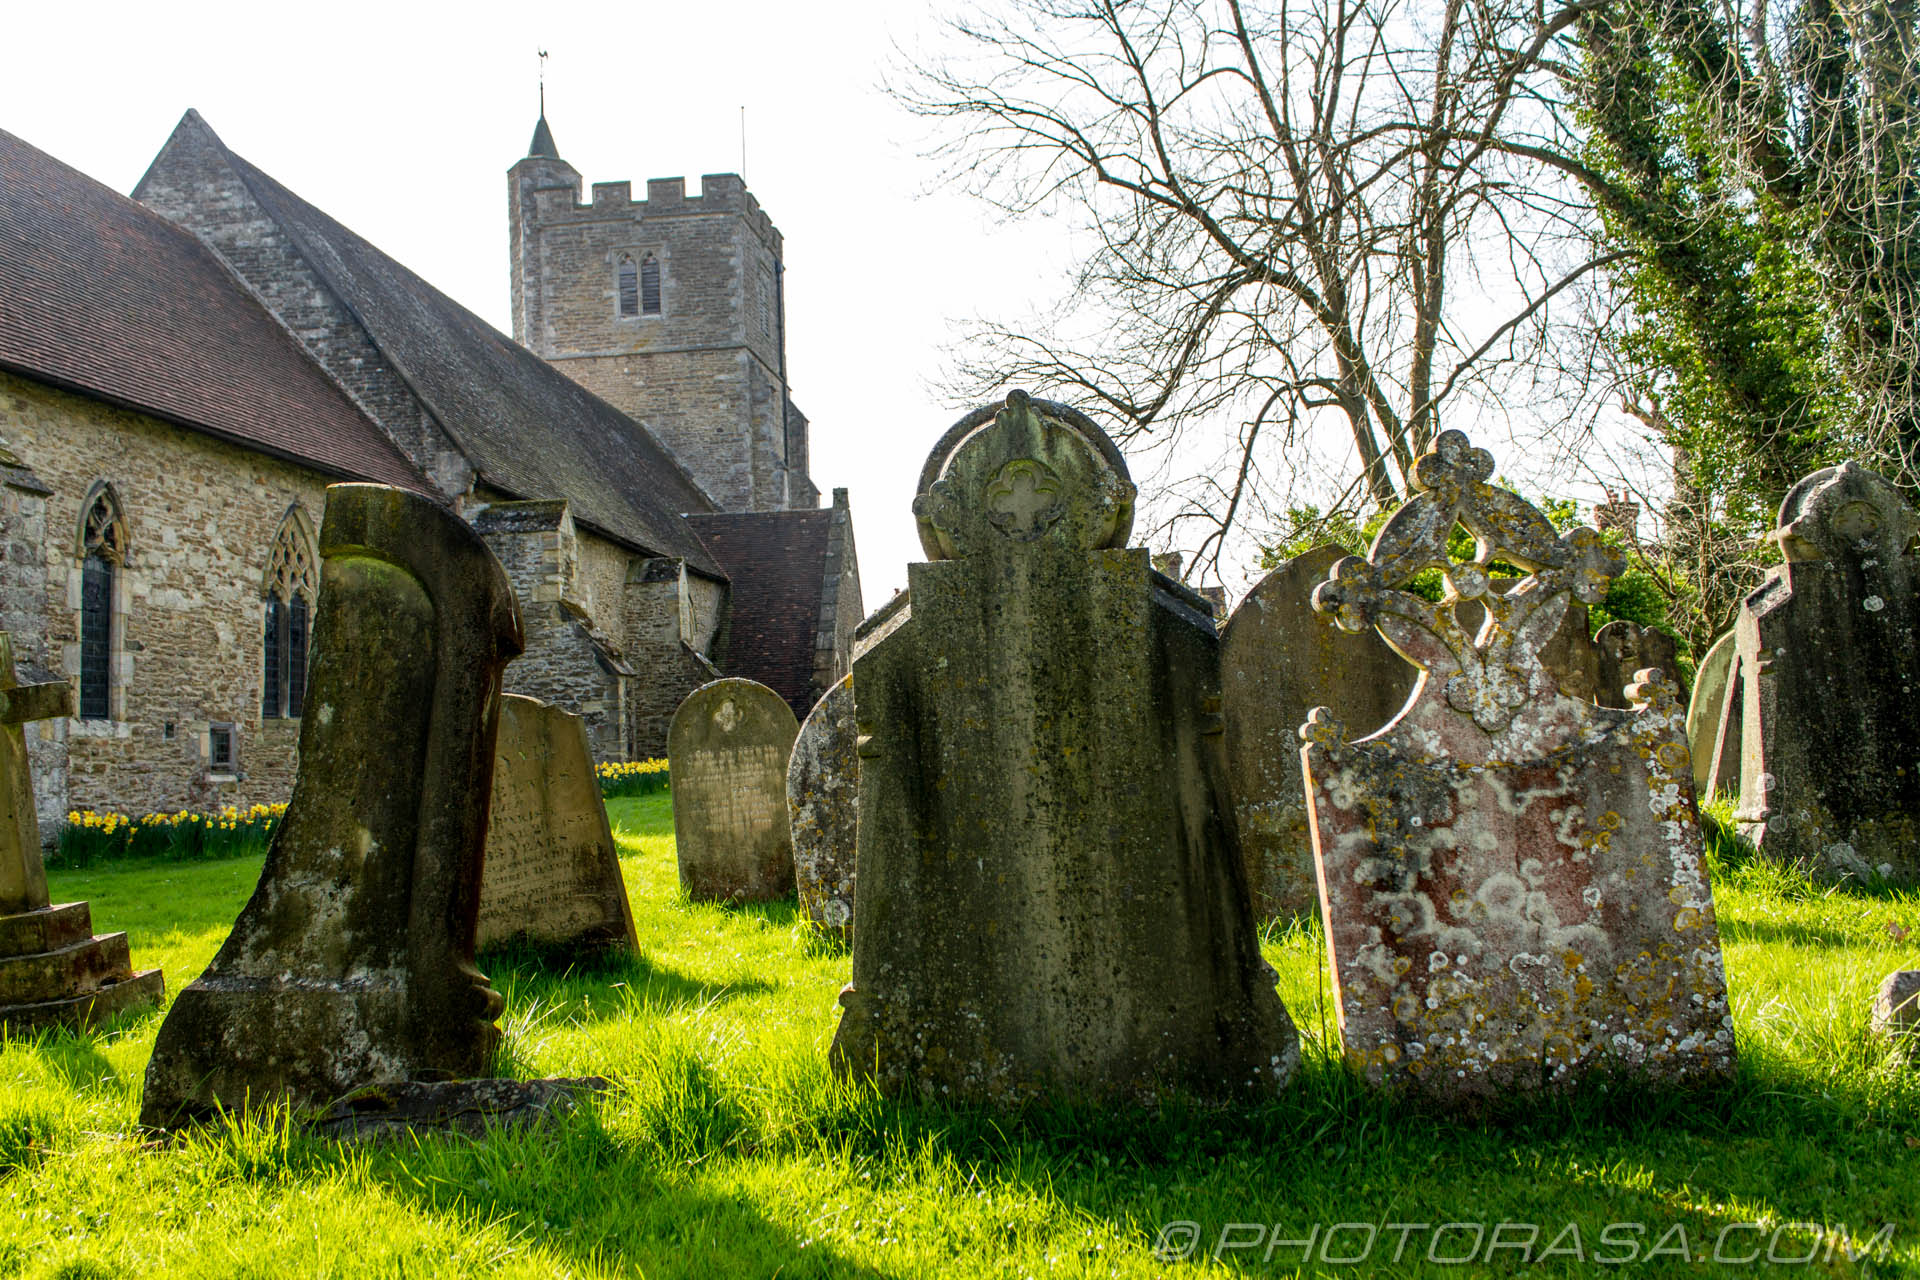 http://photorasa.com/saints-church-staplehurst-kent/old-unique-graves/